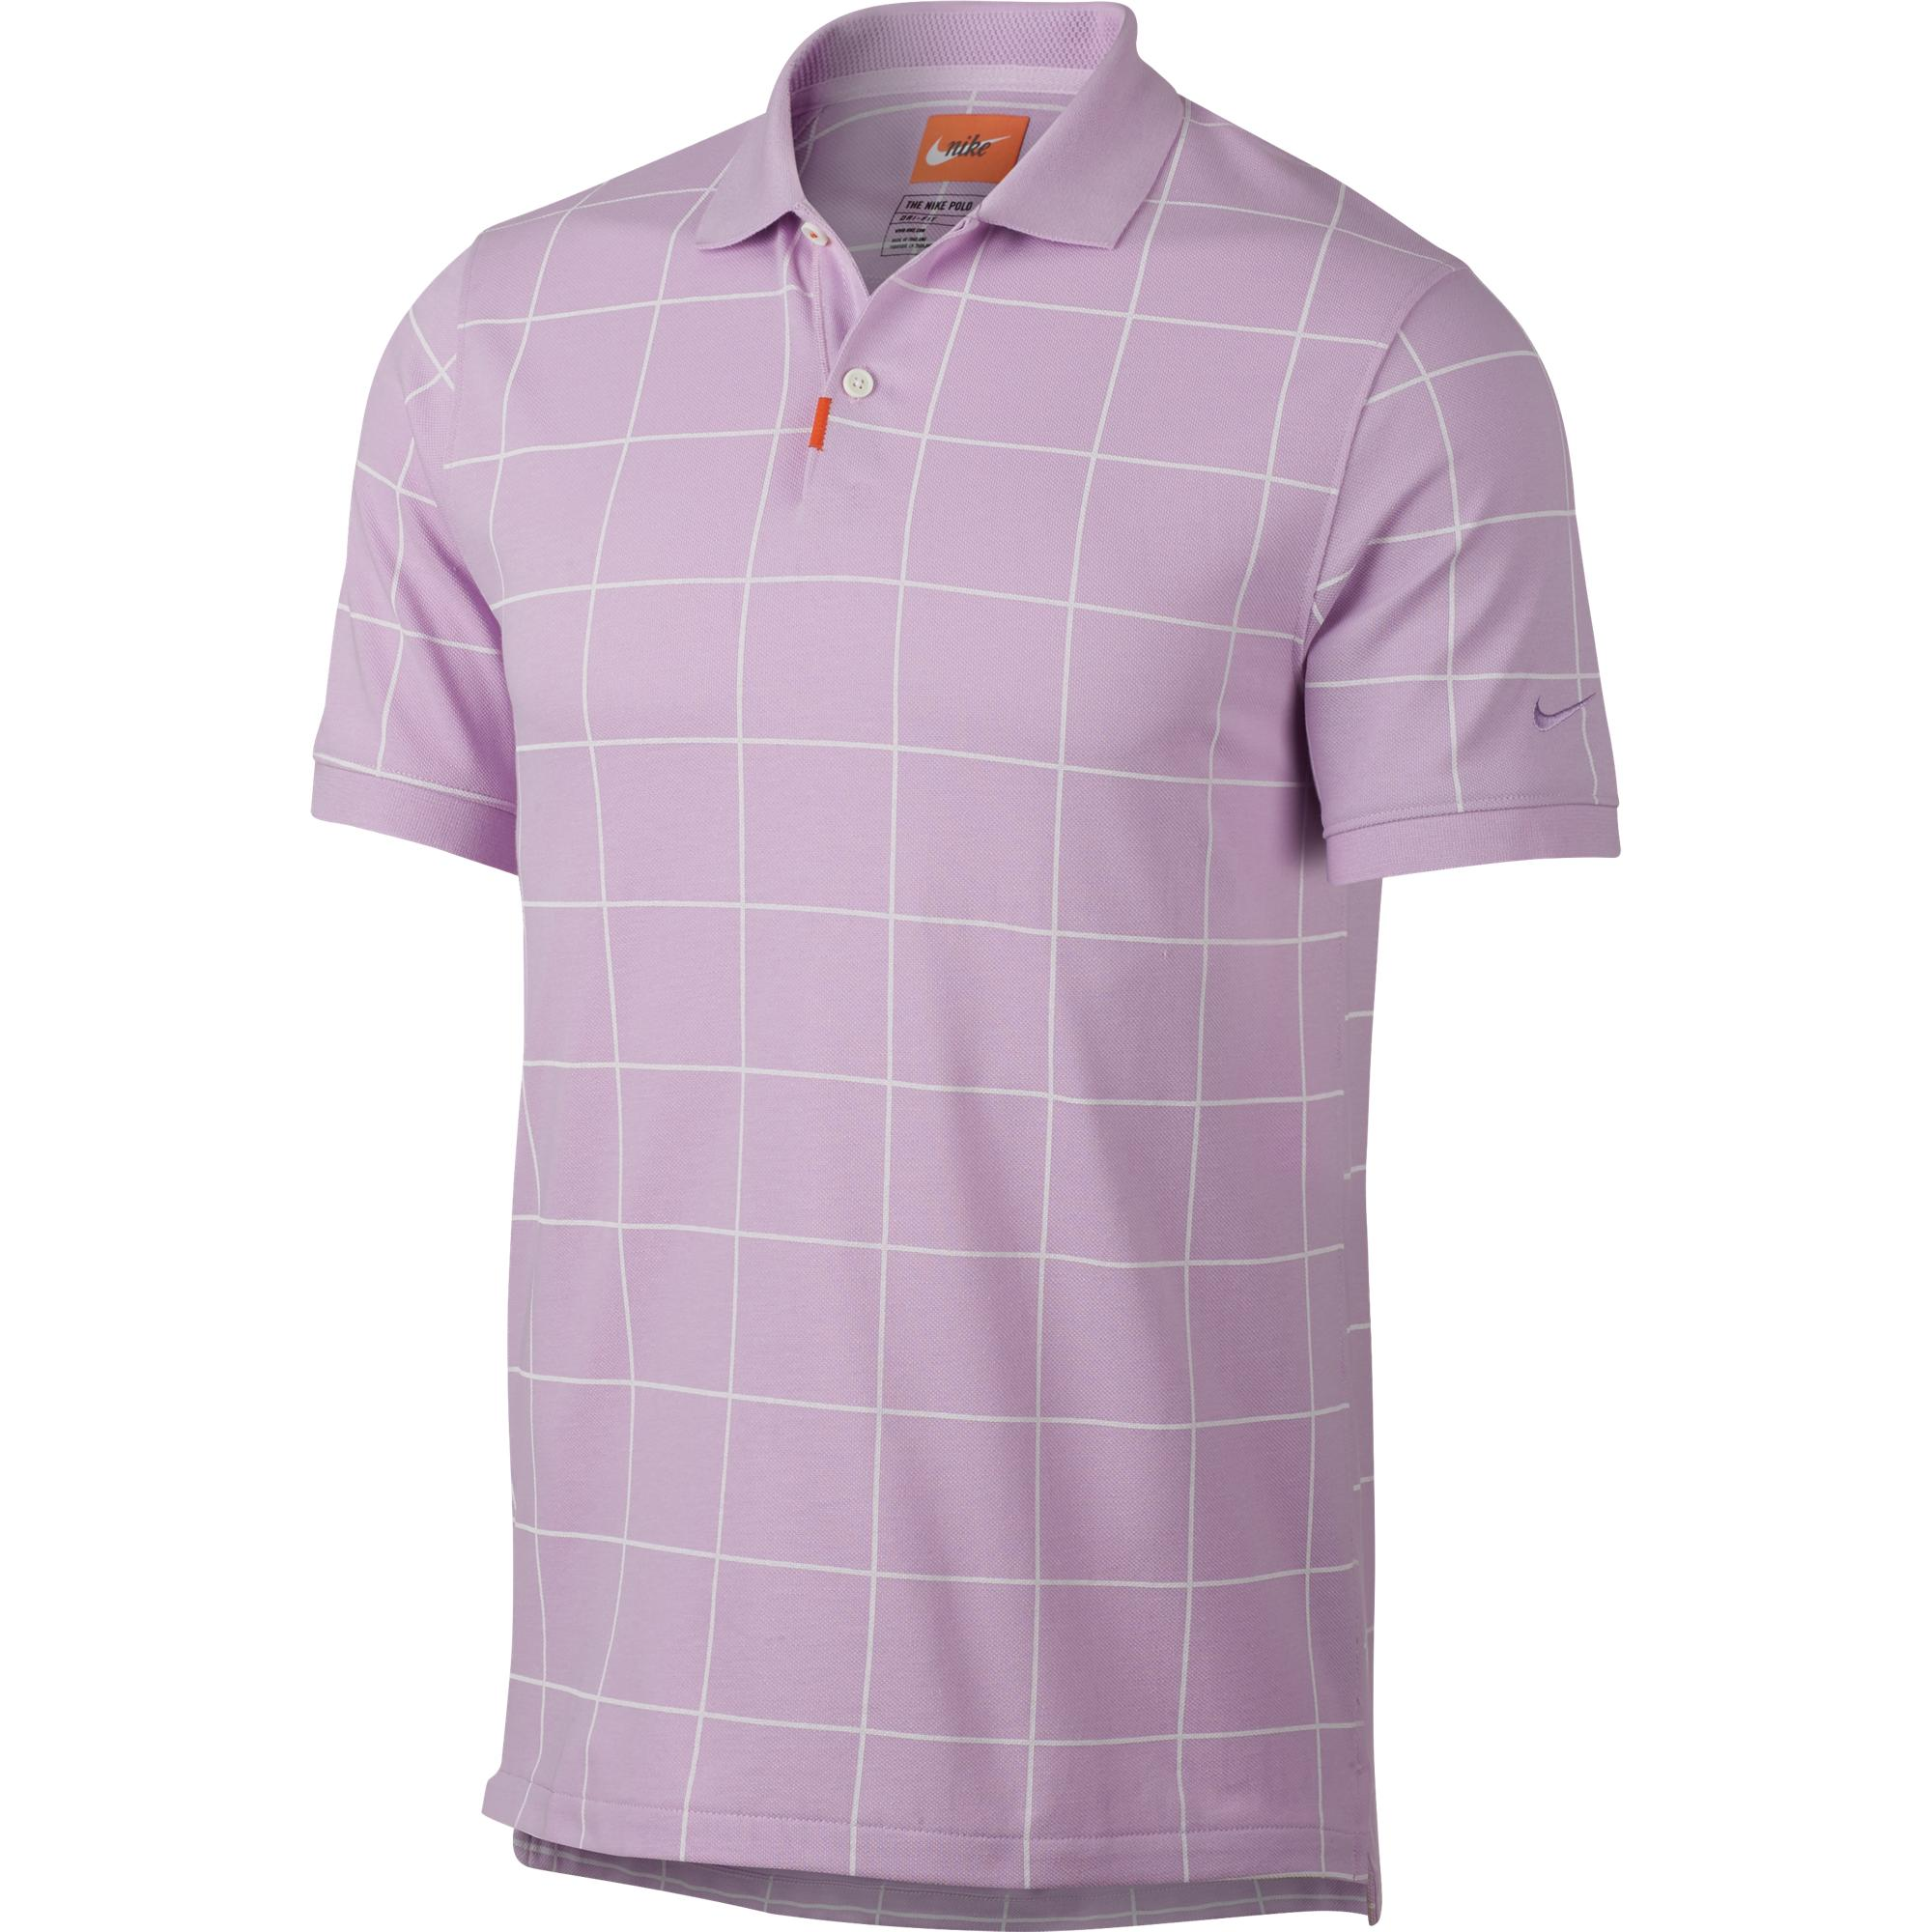 Men's Golf Grid Short Sleeve Shirt